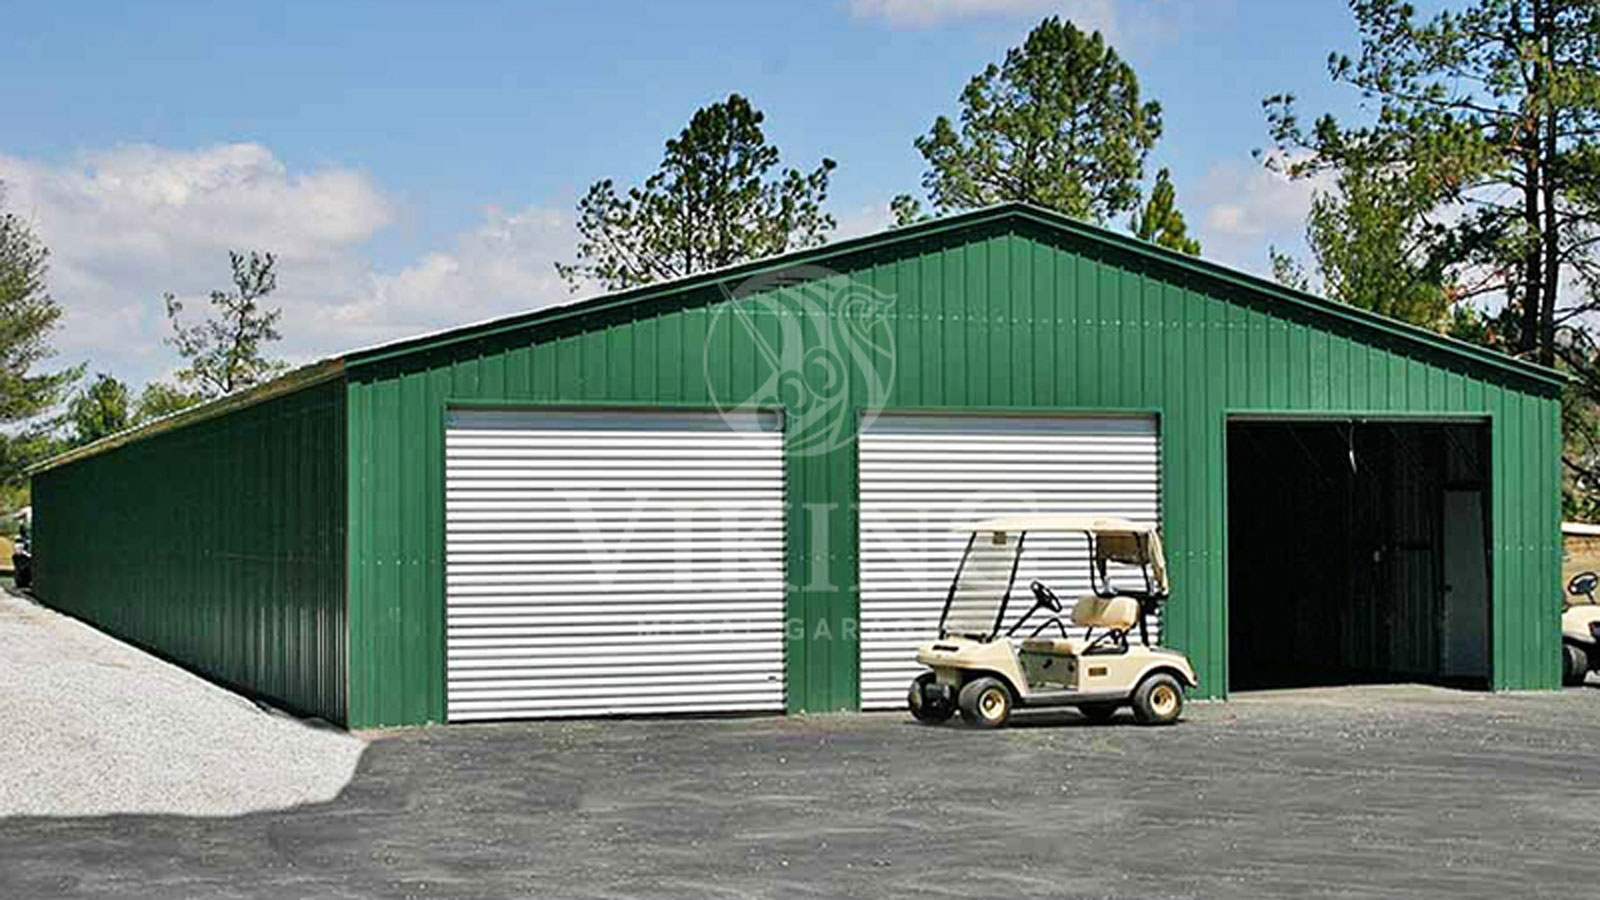 Construct Metal Buildings That Can Withstand Harsh Weather Conditions